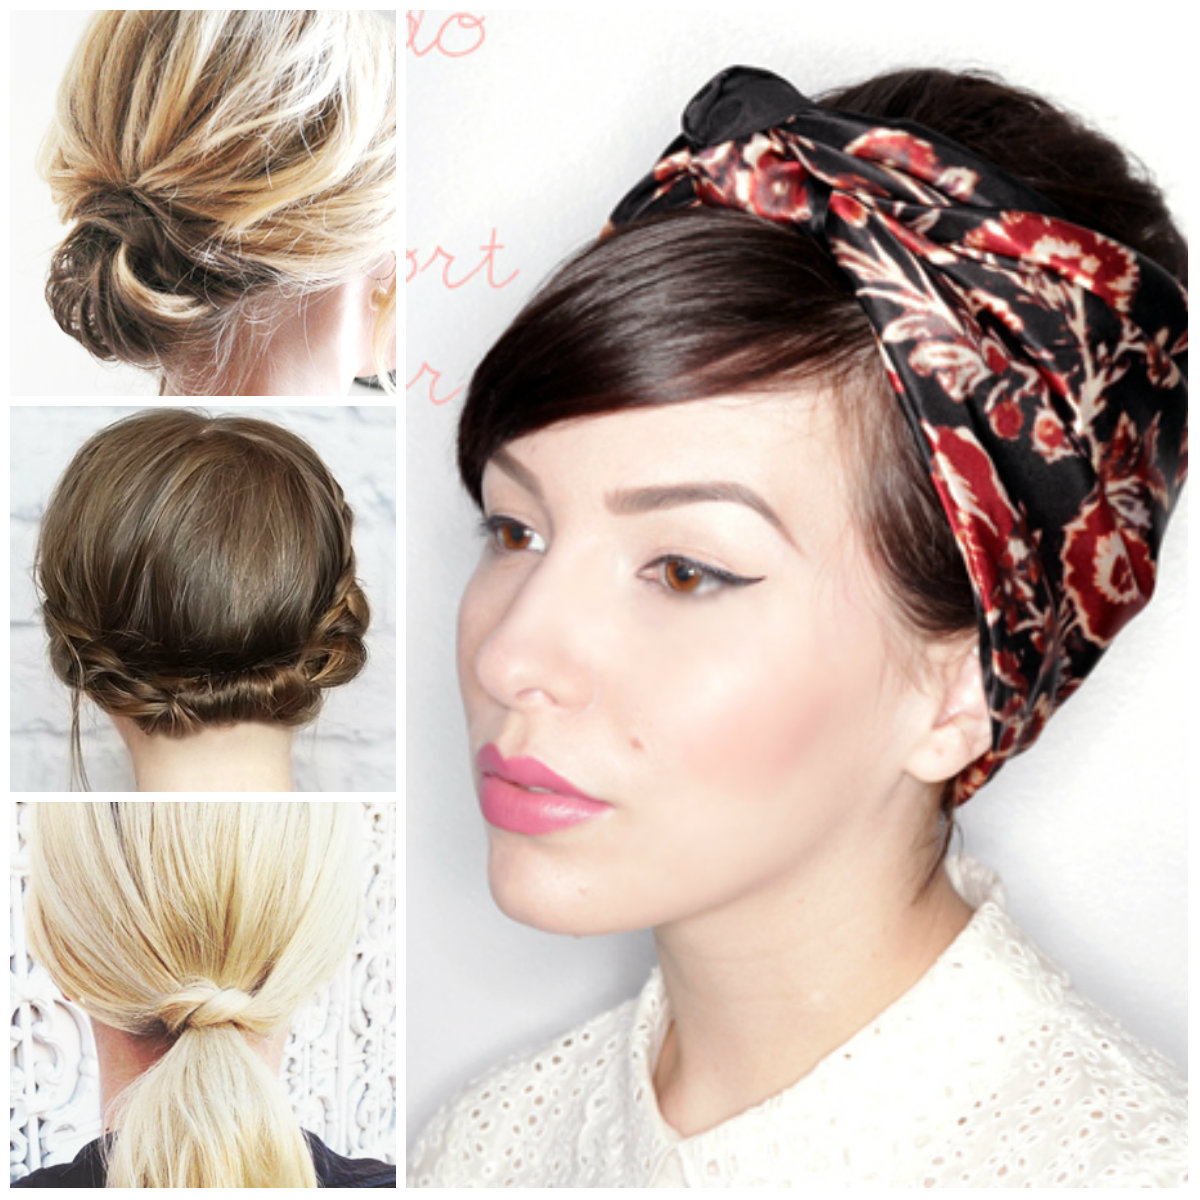 Impressive Updos for Short Hair